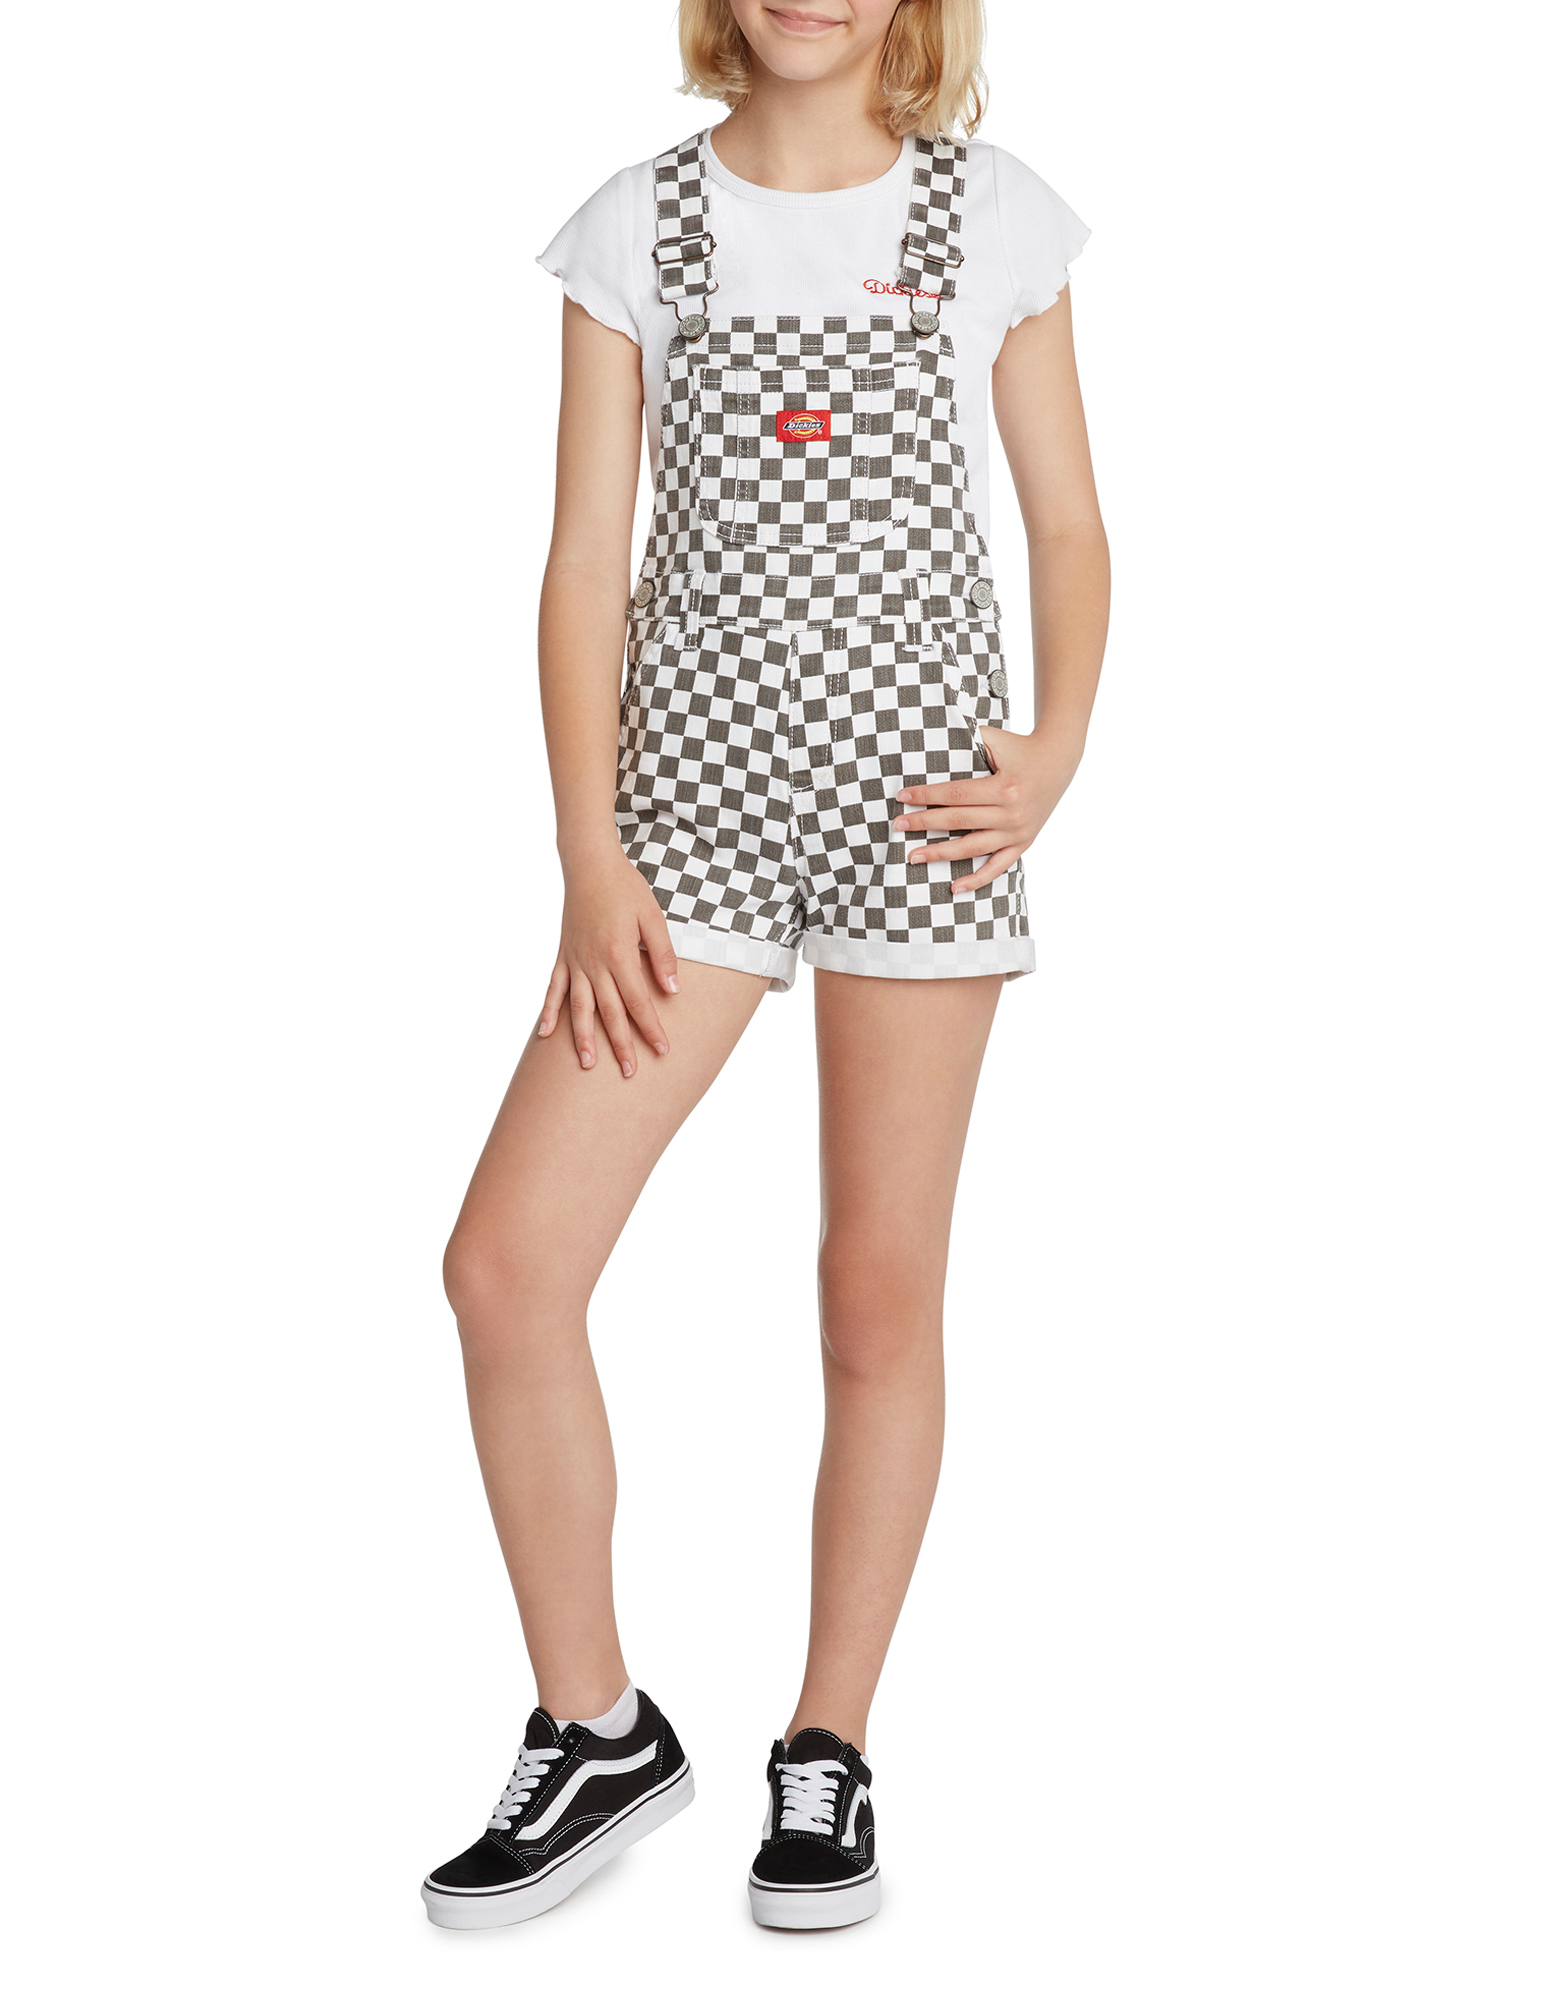 Girls' Rolled Hem Checkered Shortalls - Black White Checkered (CBW)